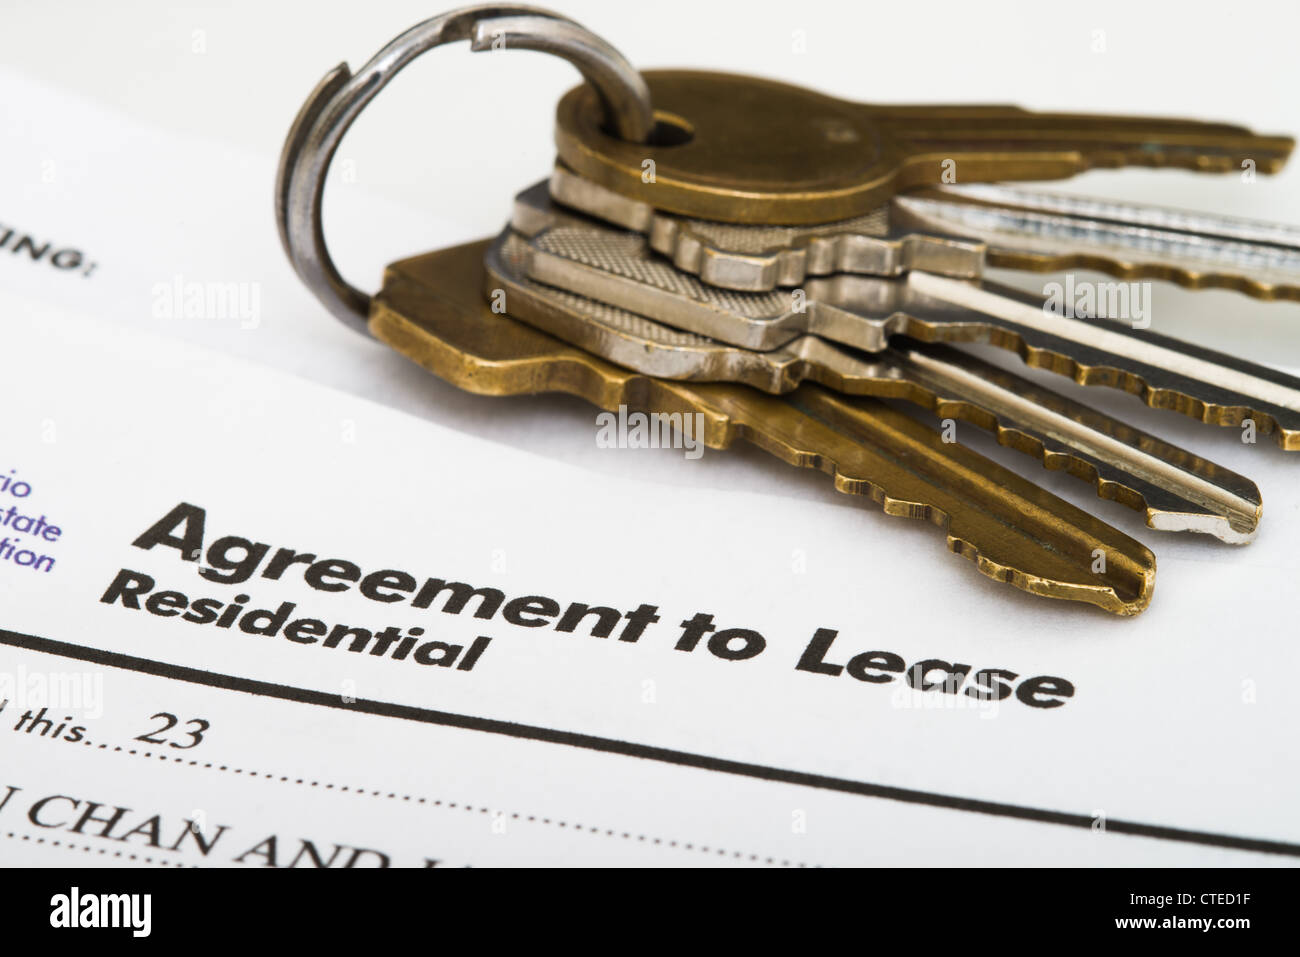 Keys and a lease agreement Stock Photo